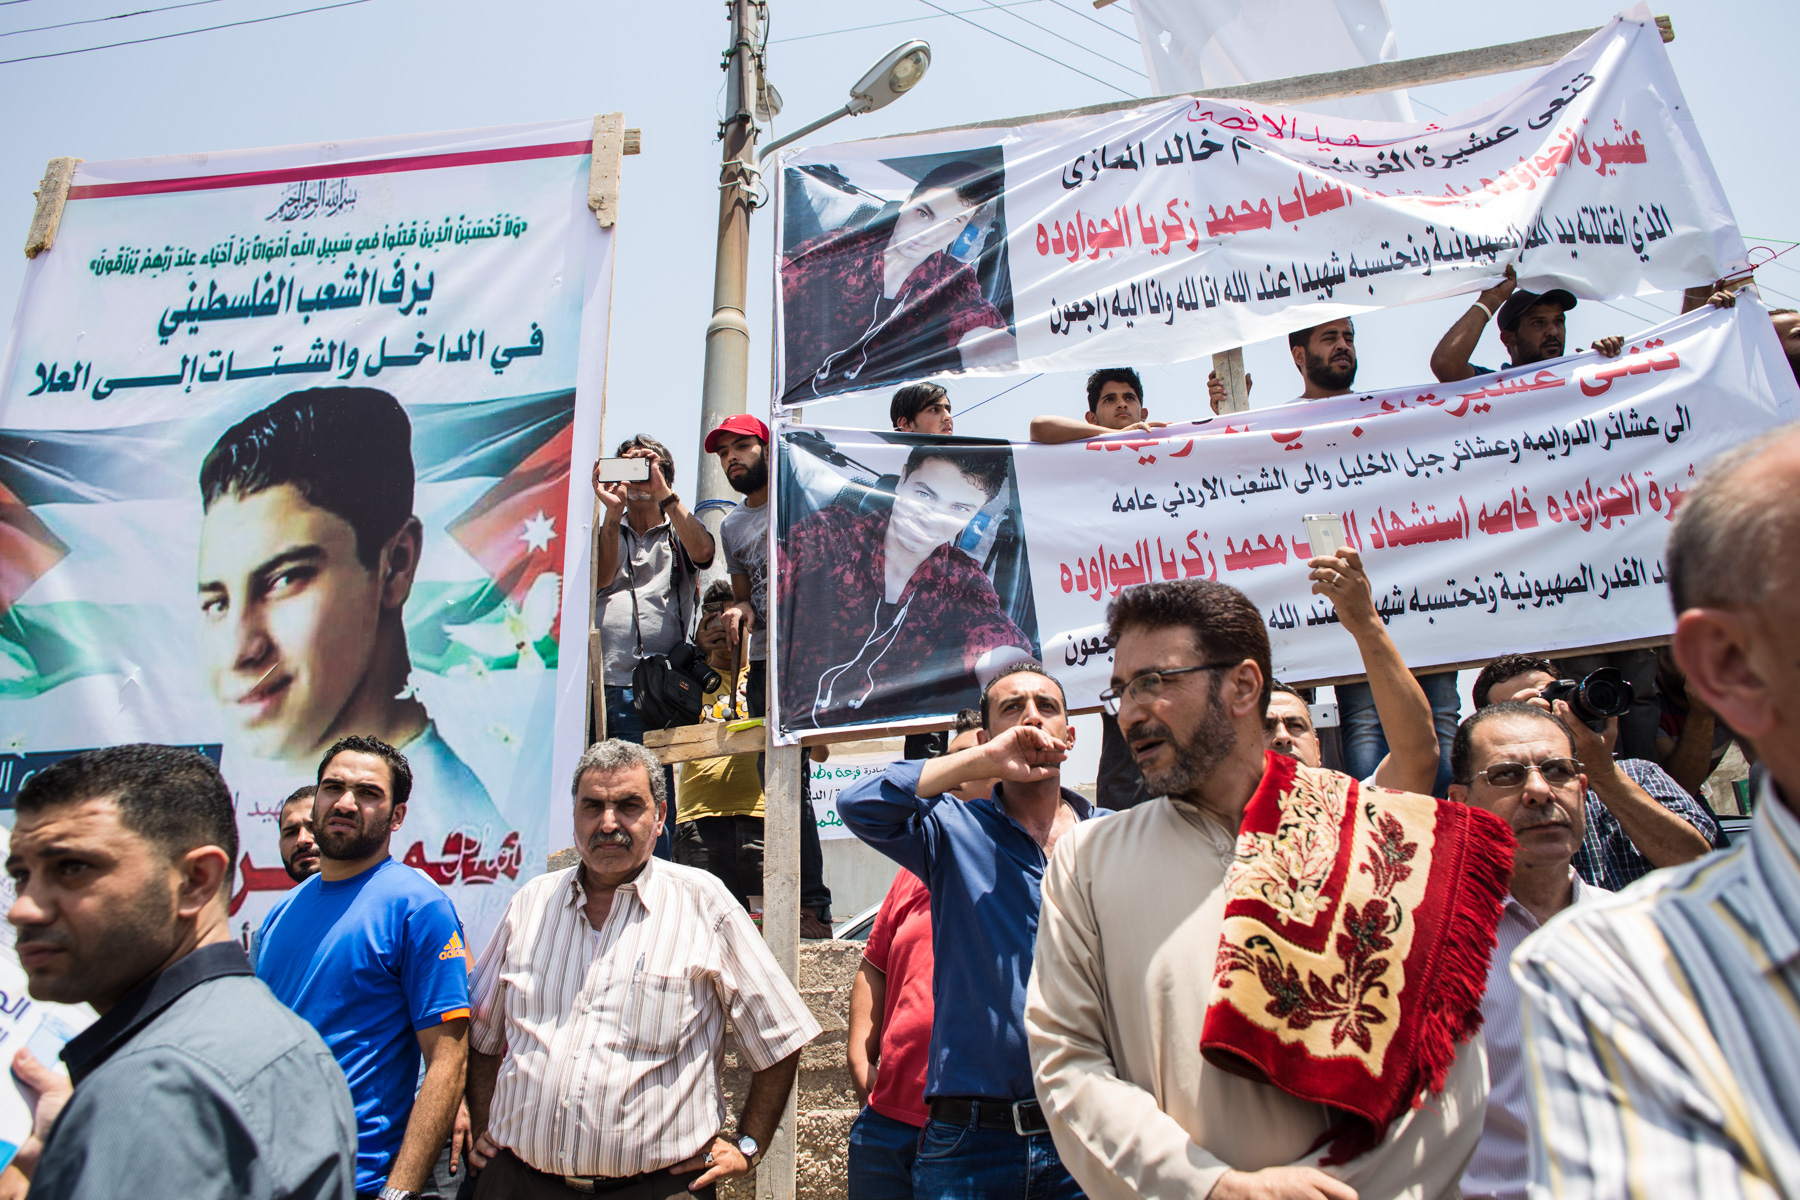 Placards are seen at the funeral of Mohammed al-Jawawdeh, a 17-year-old Jordanian, who was killed on Sunday evening by an Israeli security guard who said he was attacked by him with a screwsdriver, on Tuesday, July 25, 2017 in Amman, Jordan.